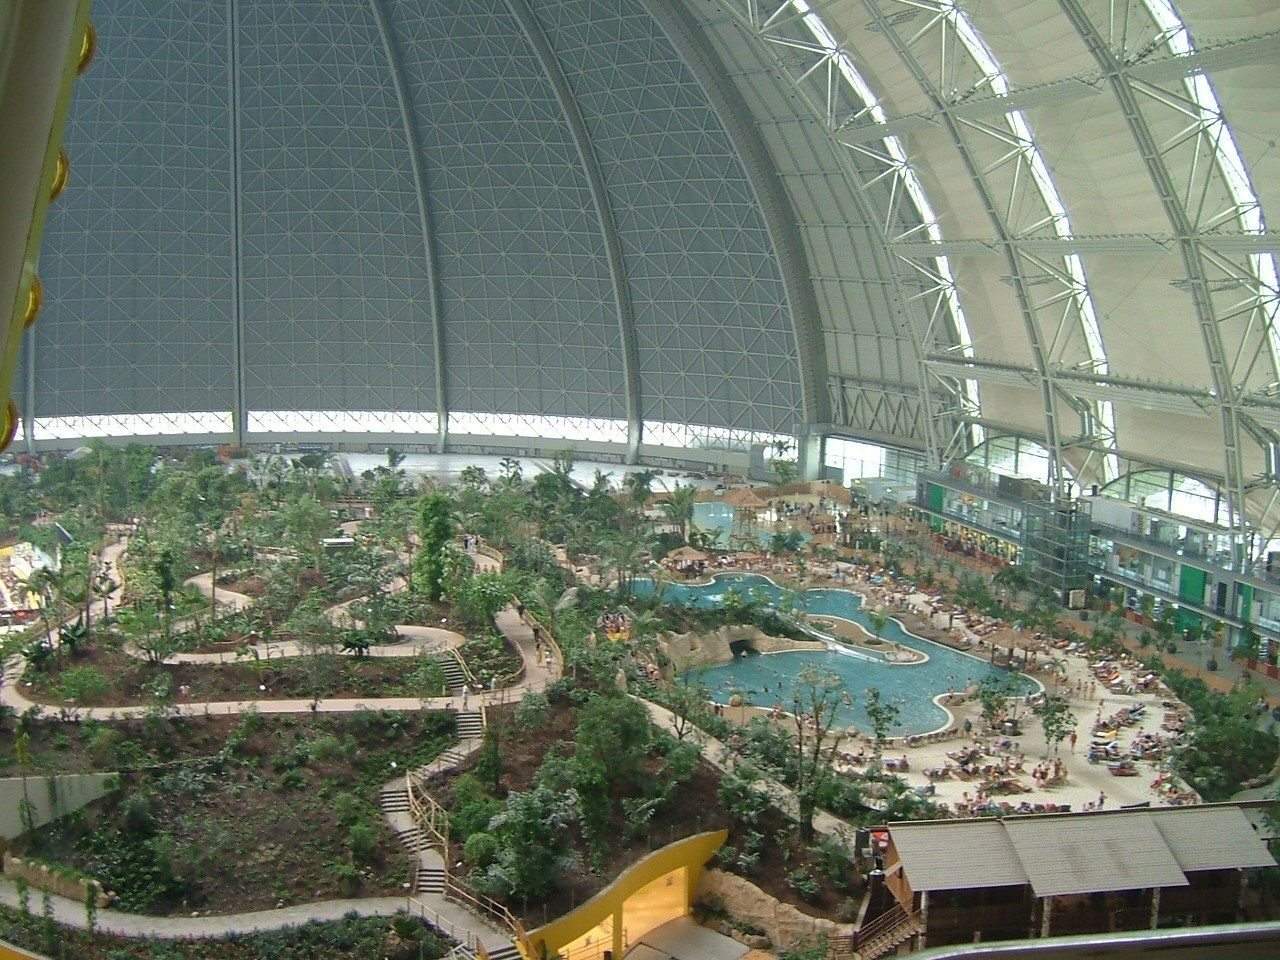 Swimming Pools In Berlin Berlin Germany Tropical Island Swimming Pool Inside A Zeppelin